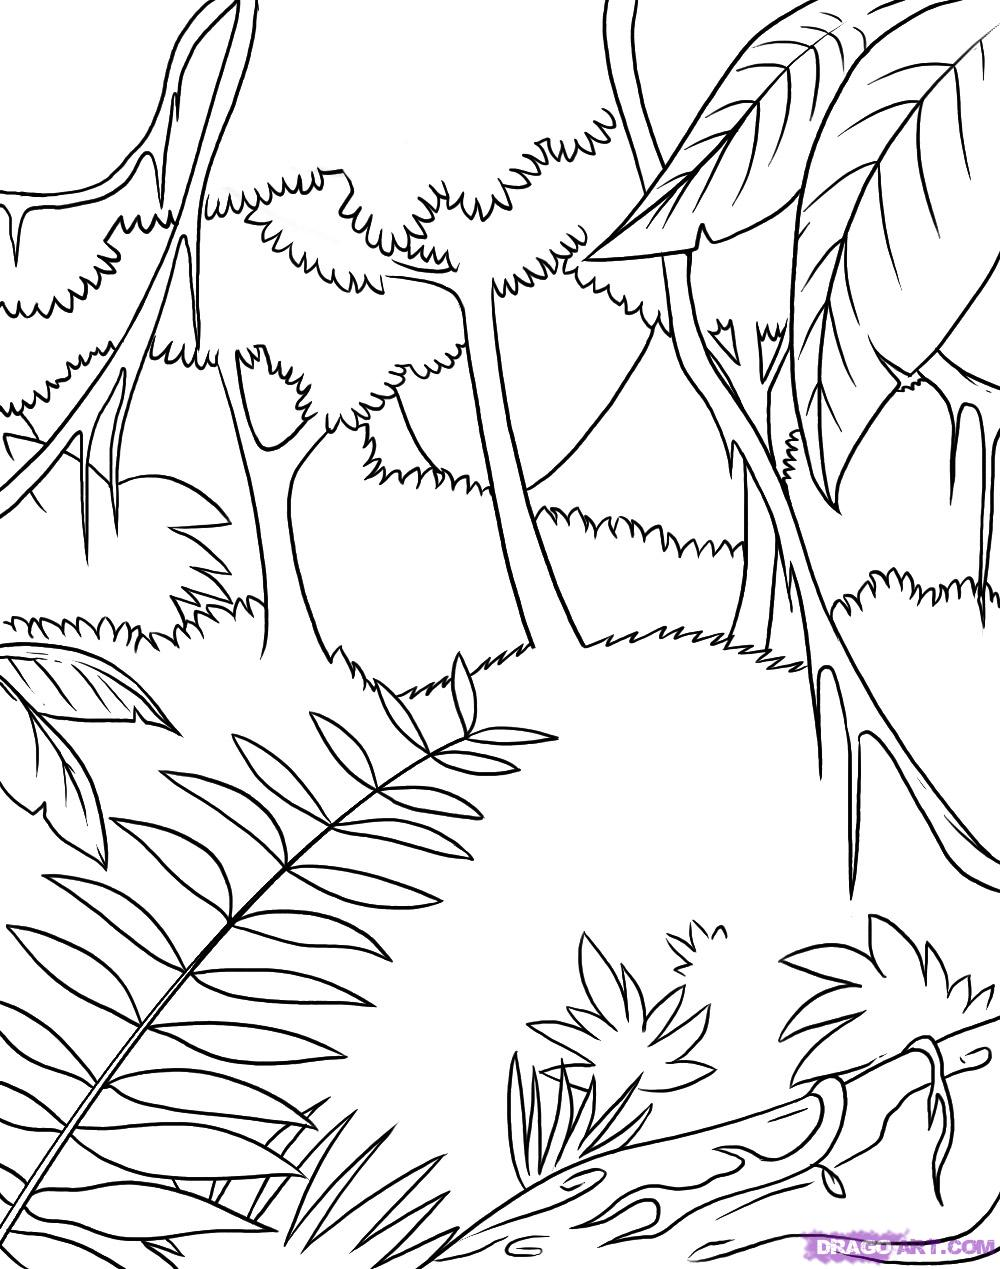 Tropical Rainforest Drawing at GetDrawings.com | Free for personal ...